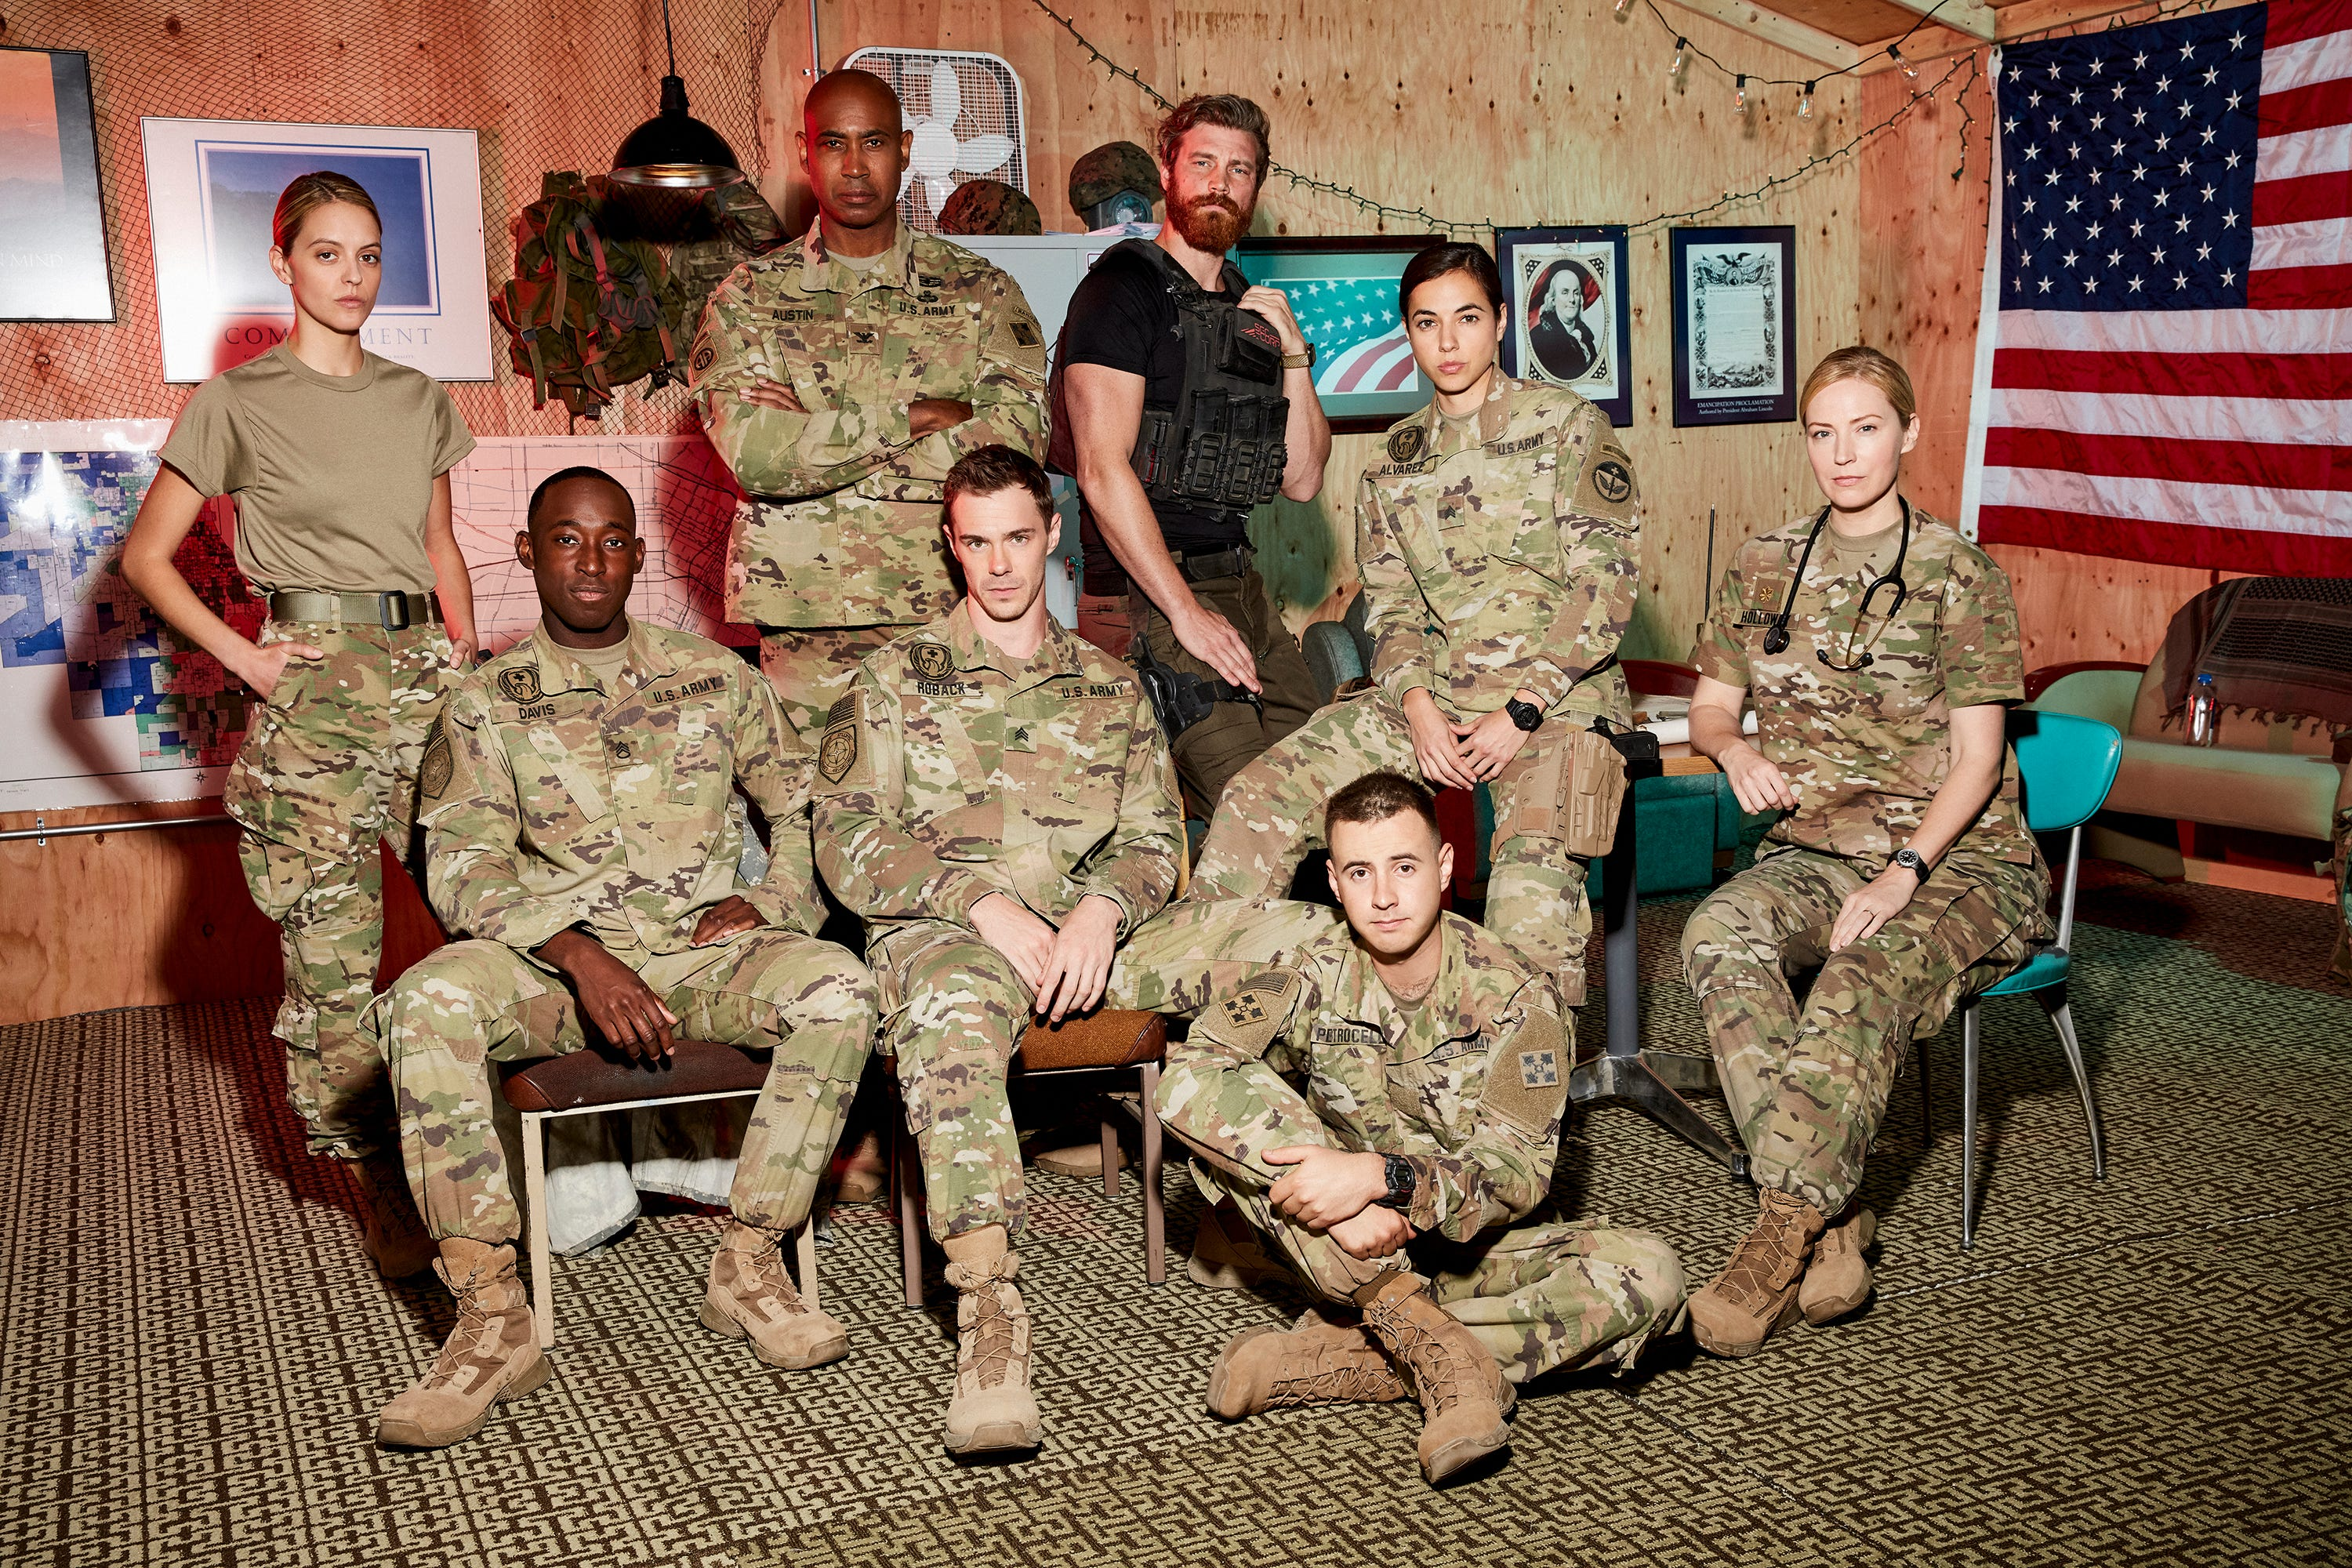 Five of the best military TV shows to binge-watch